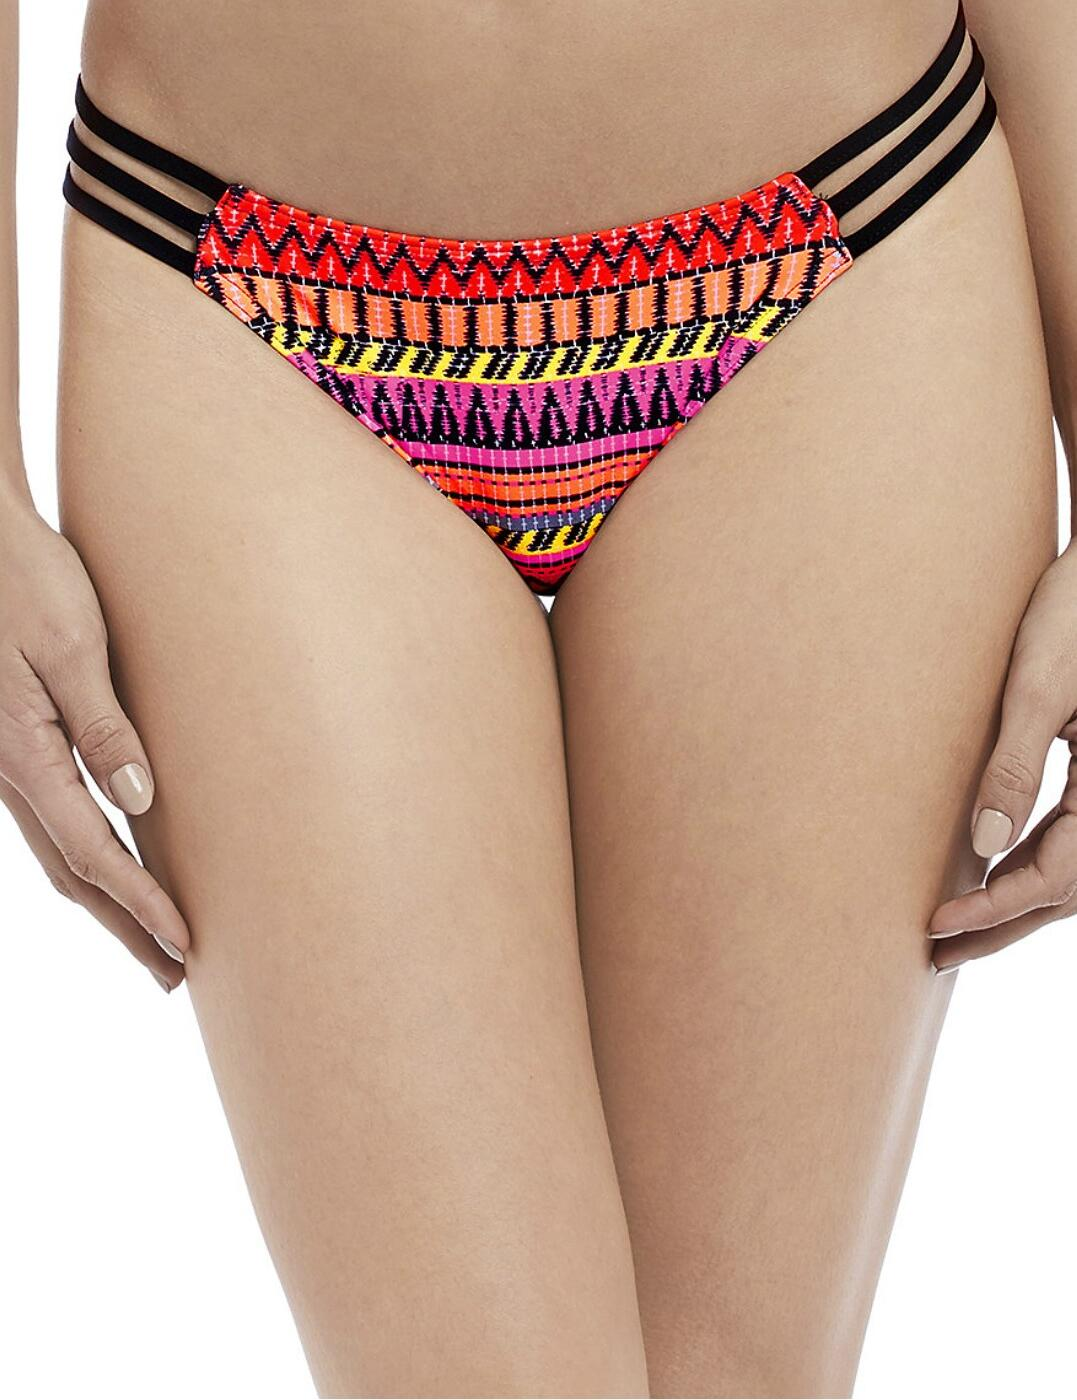 4625 Freya Way Out West Tanga Bikini Brief - 4625 Sunset